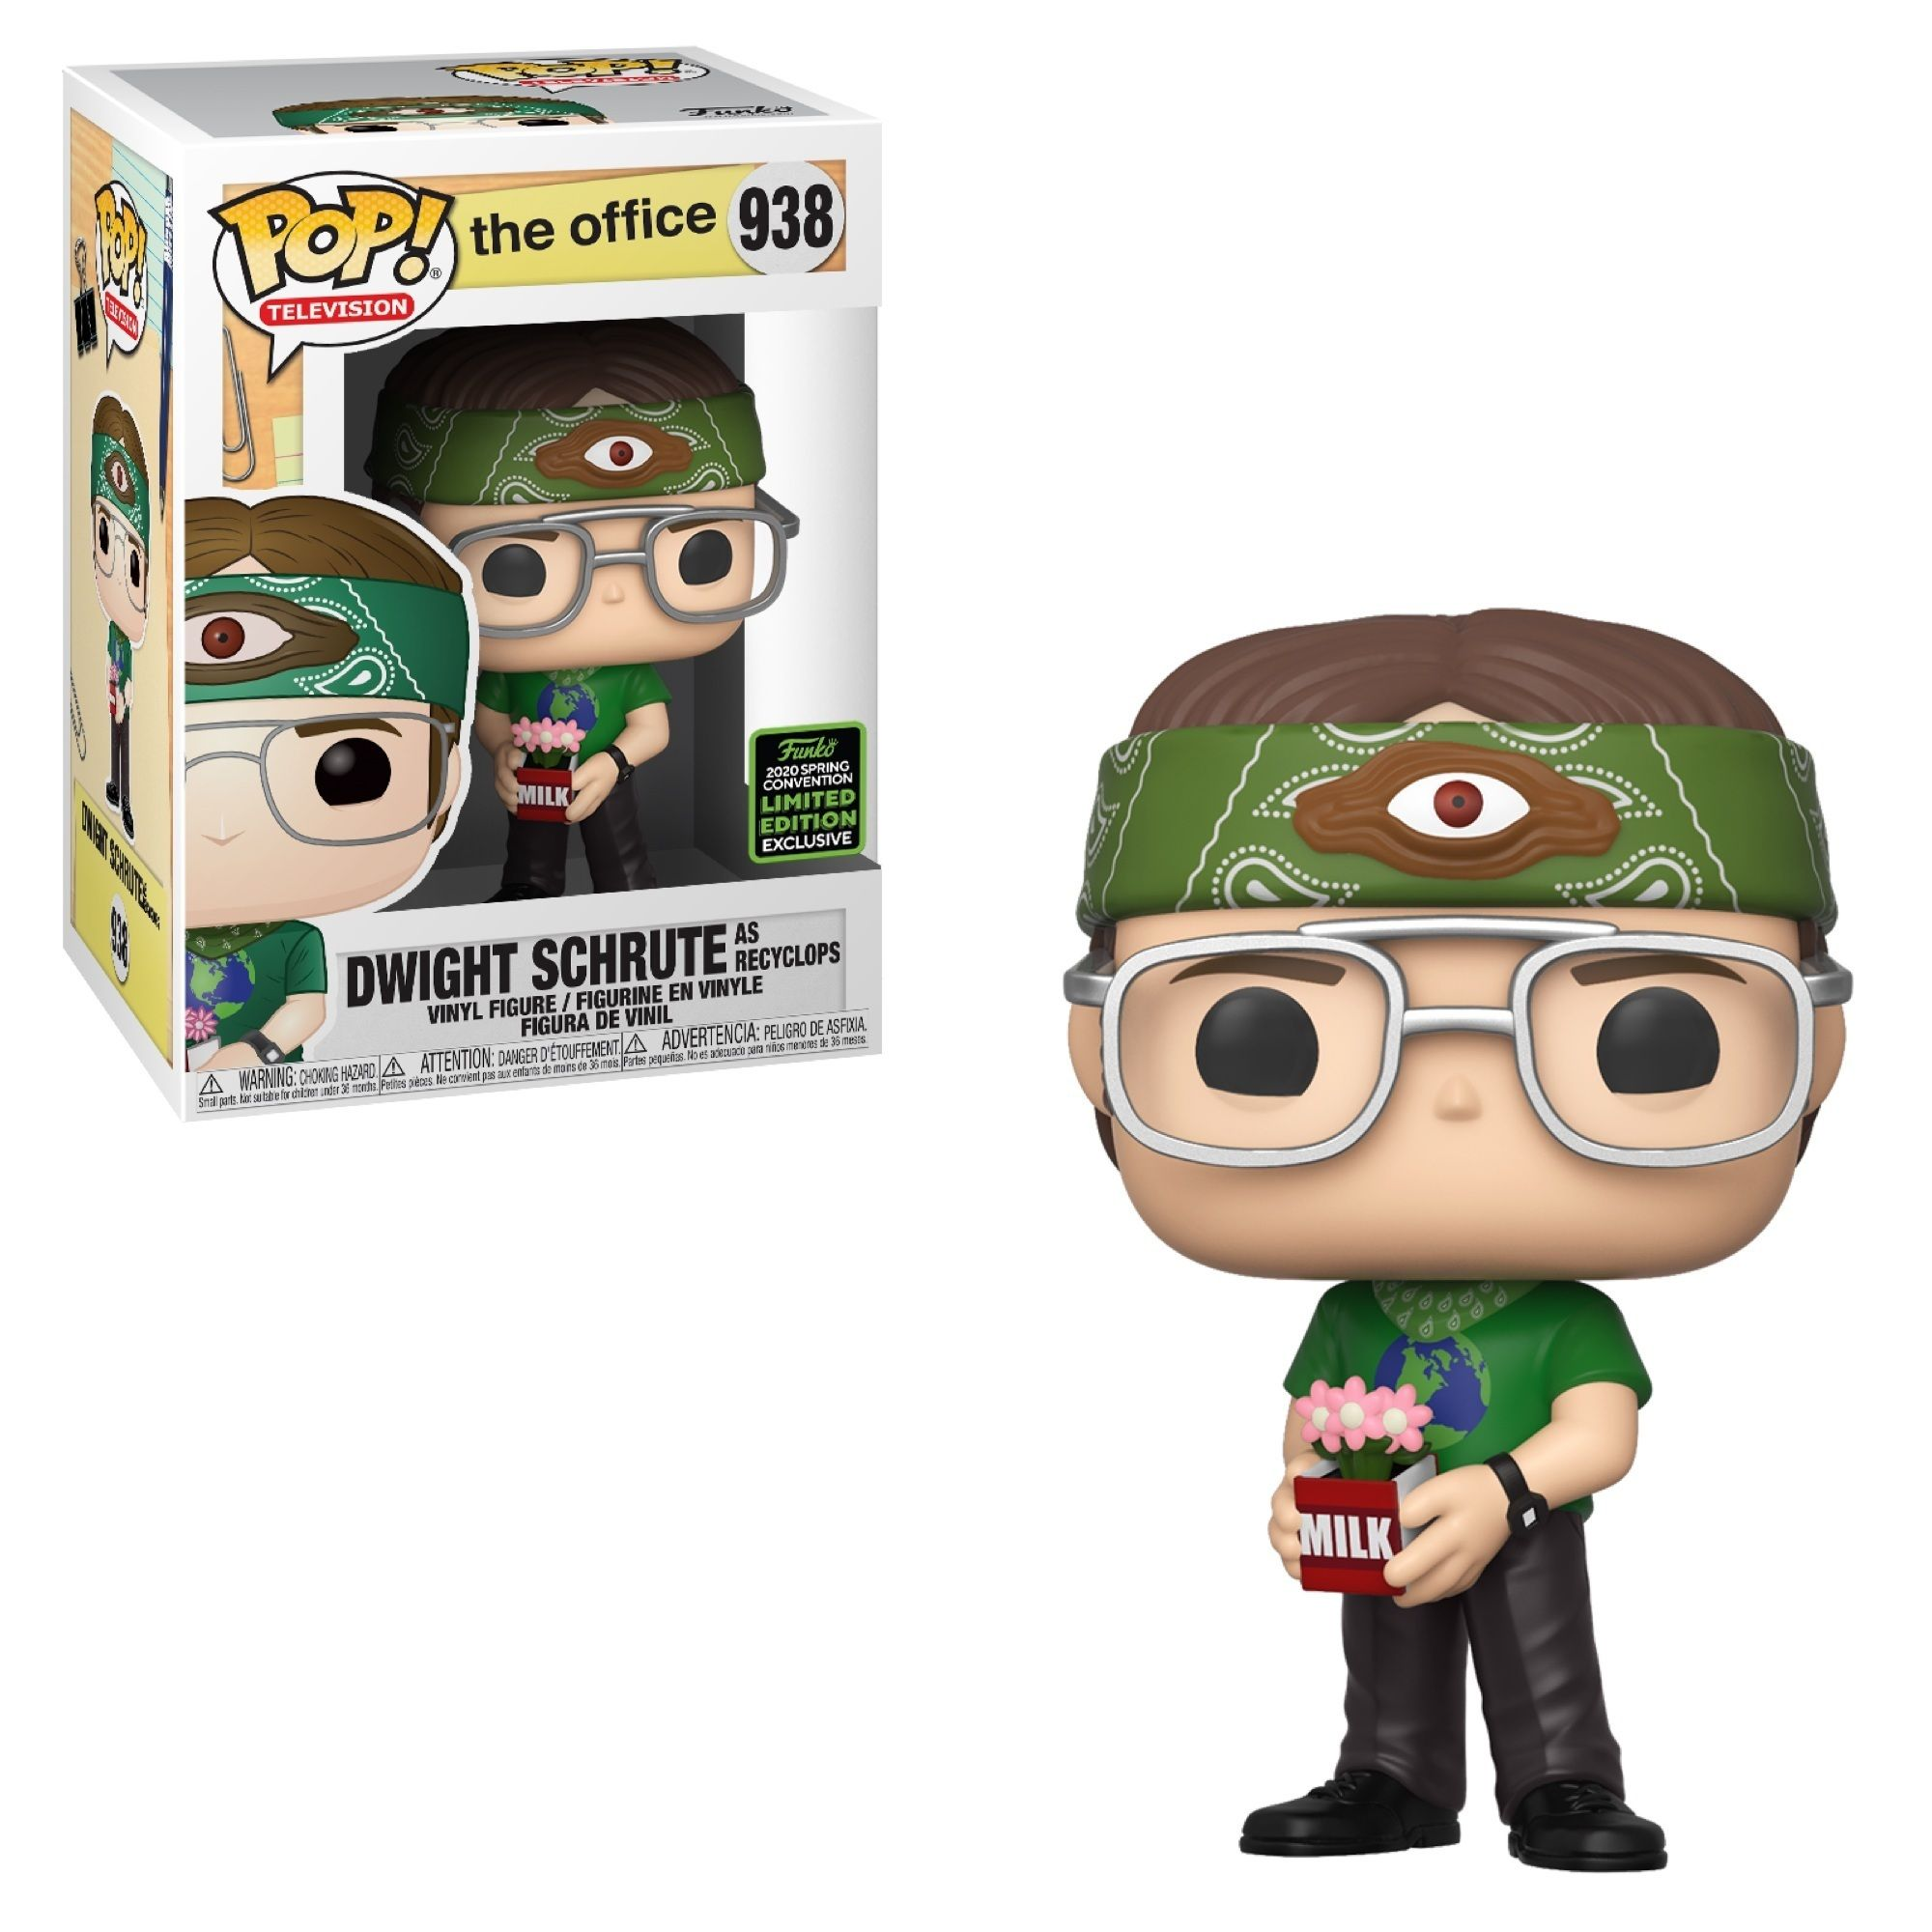 Funko Pop! Dwight Schrute as Recyclops [Spring Convention]